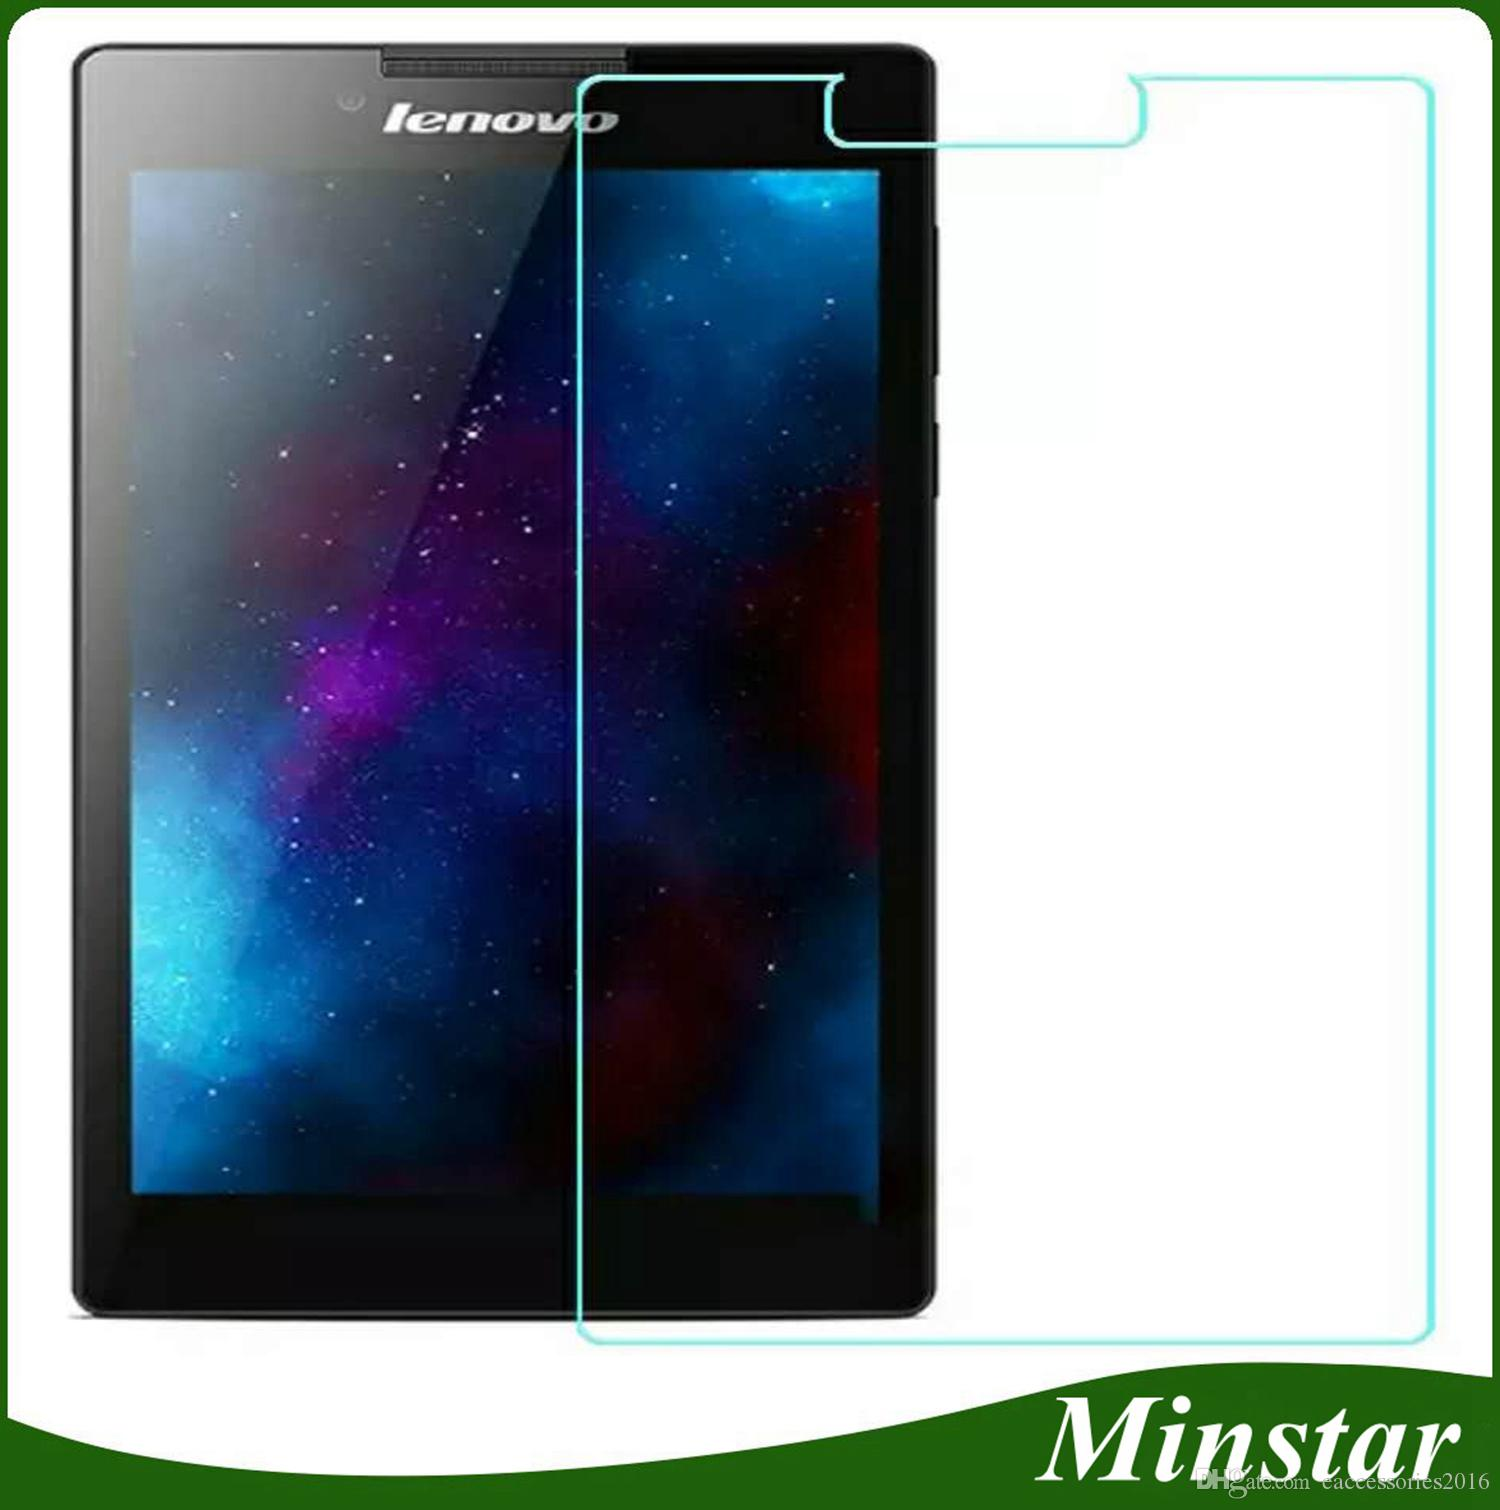 For Lenovo Tab 2 A7 30 A7 20 A7 10 7 Inch A8 50 8 A10 70 10 1 Tablet Tempered Glass Tab2 Screen Protector Guard Protective Best Quality Tempered Glass